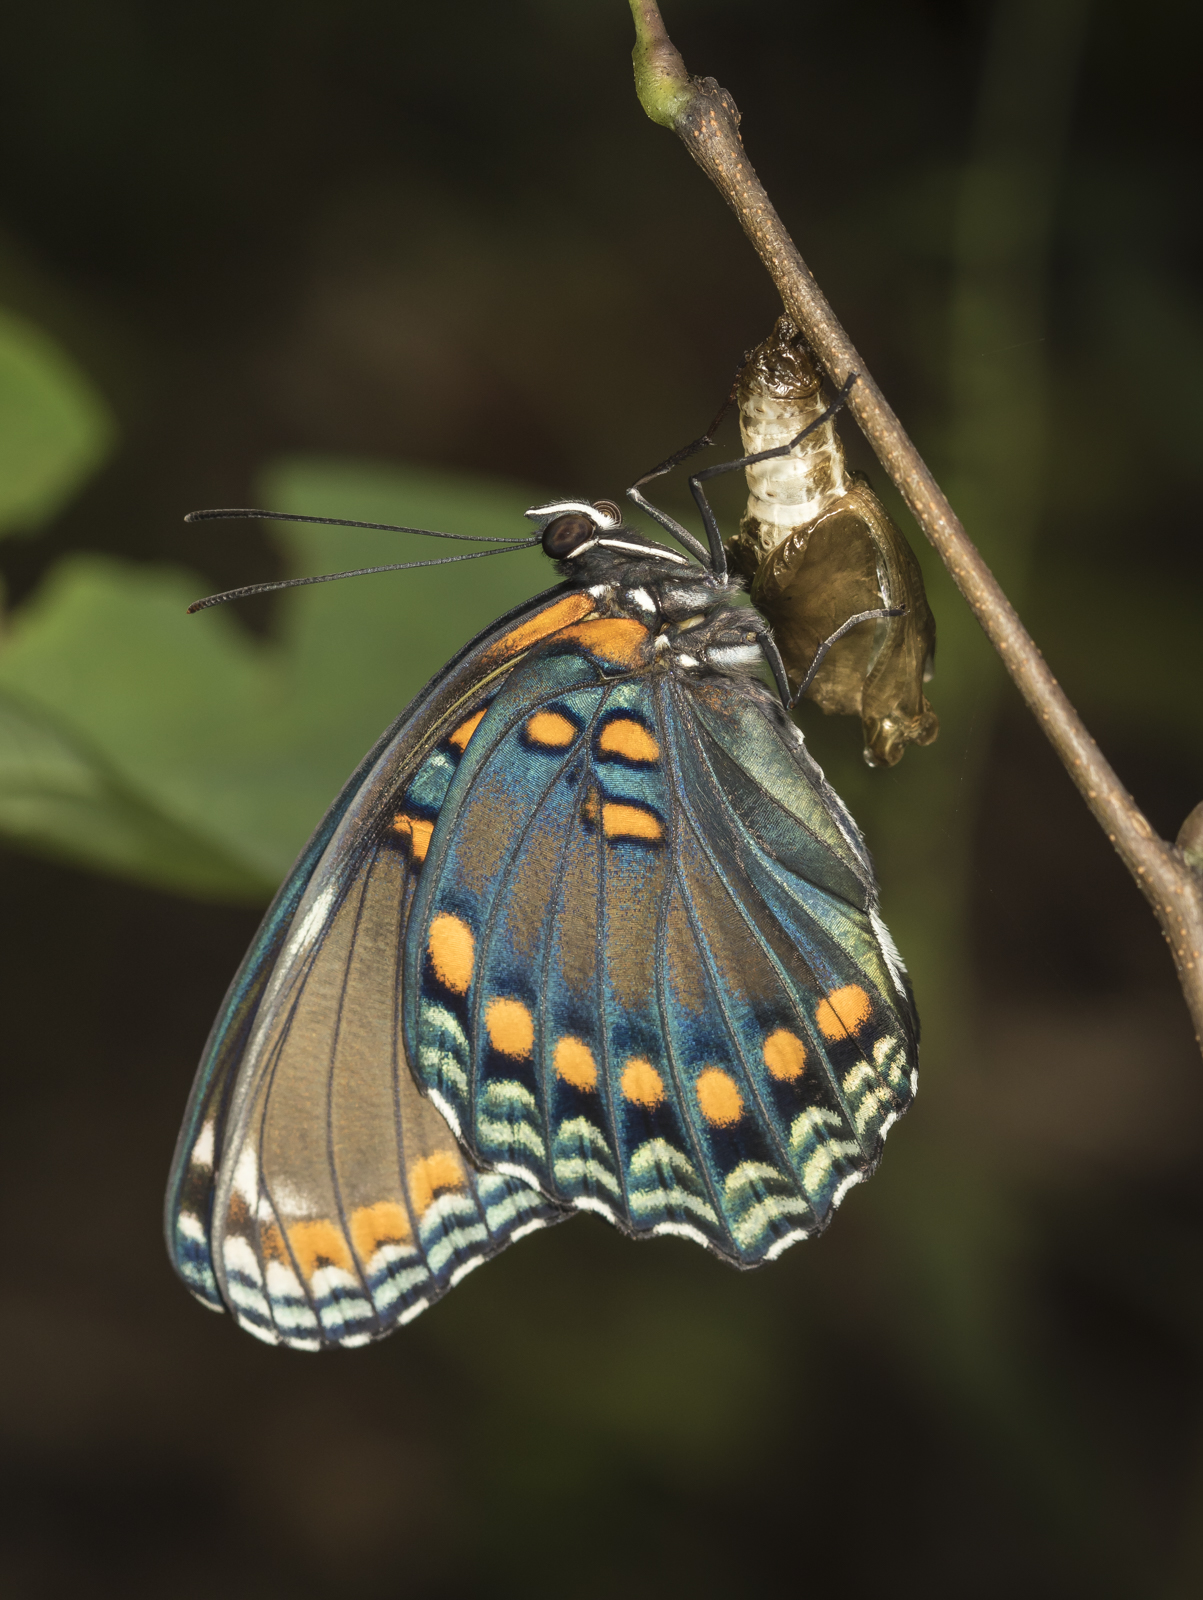 Red-spotted purple butterfly freshly emerged